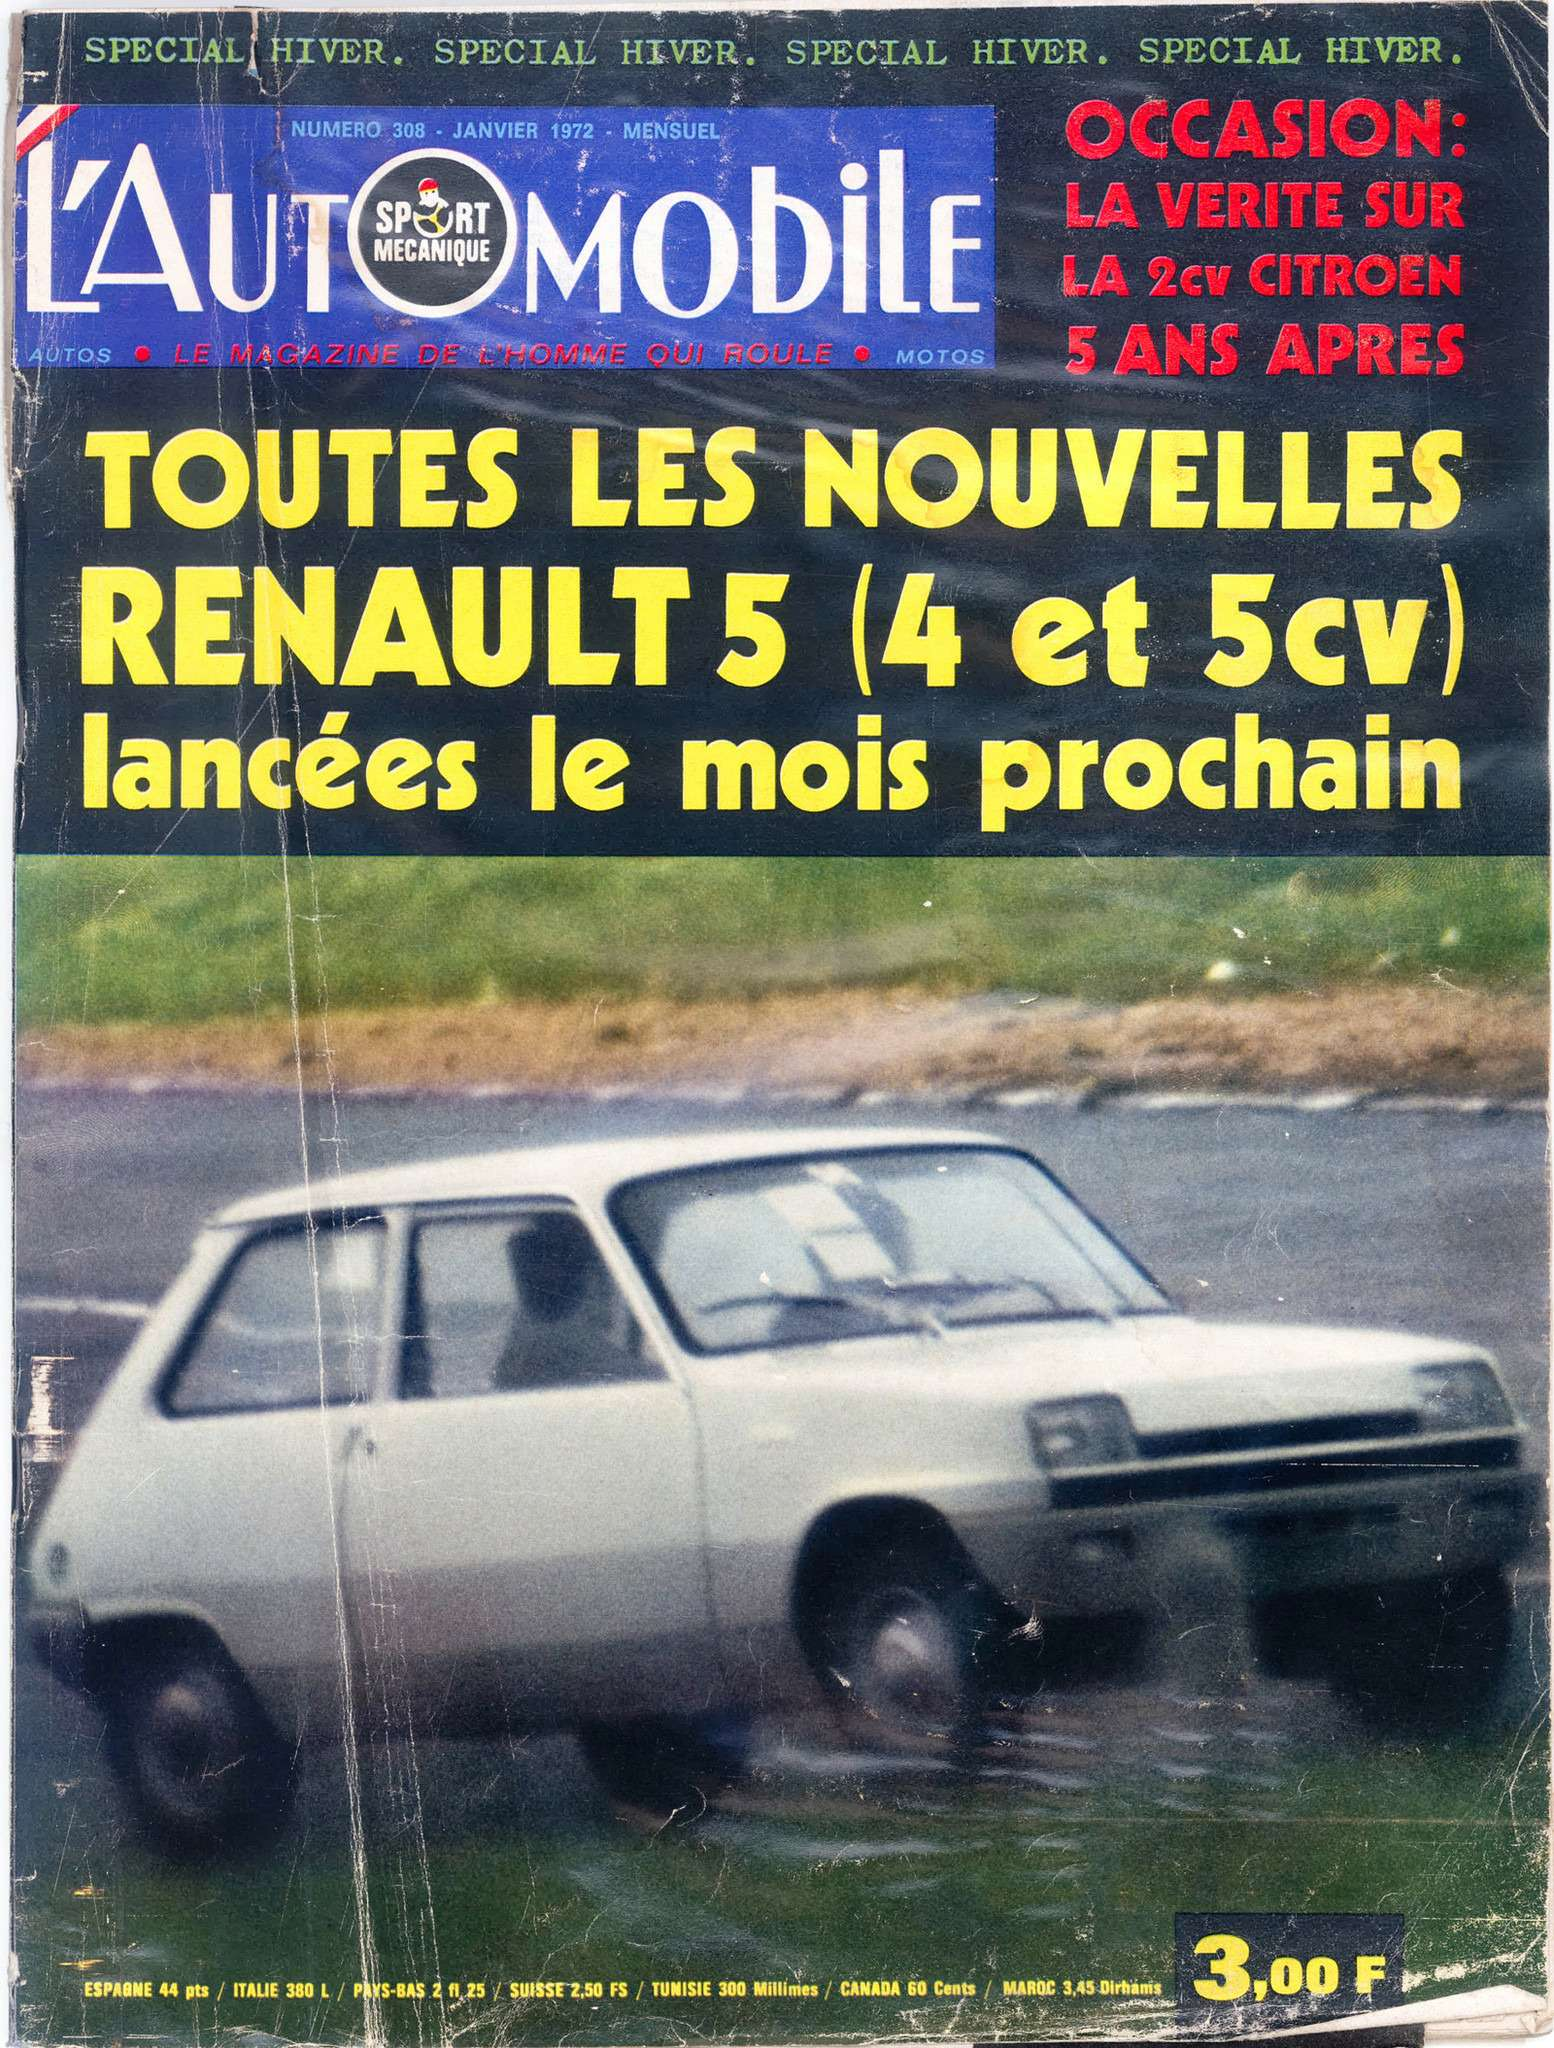 77-Renault-old_zr-01_16